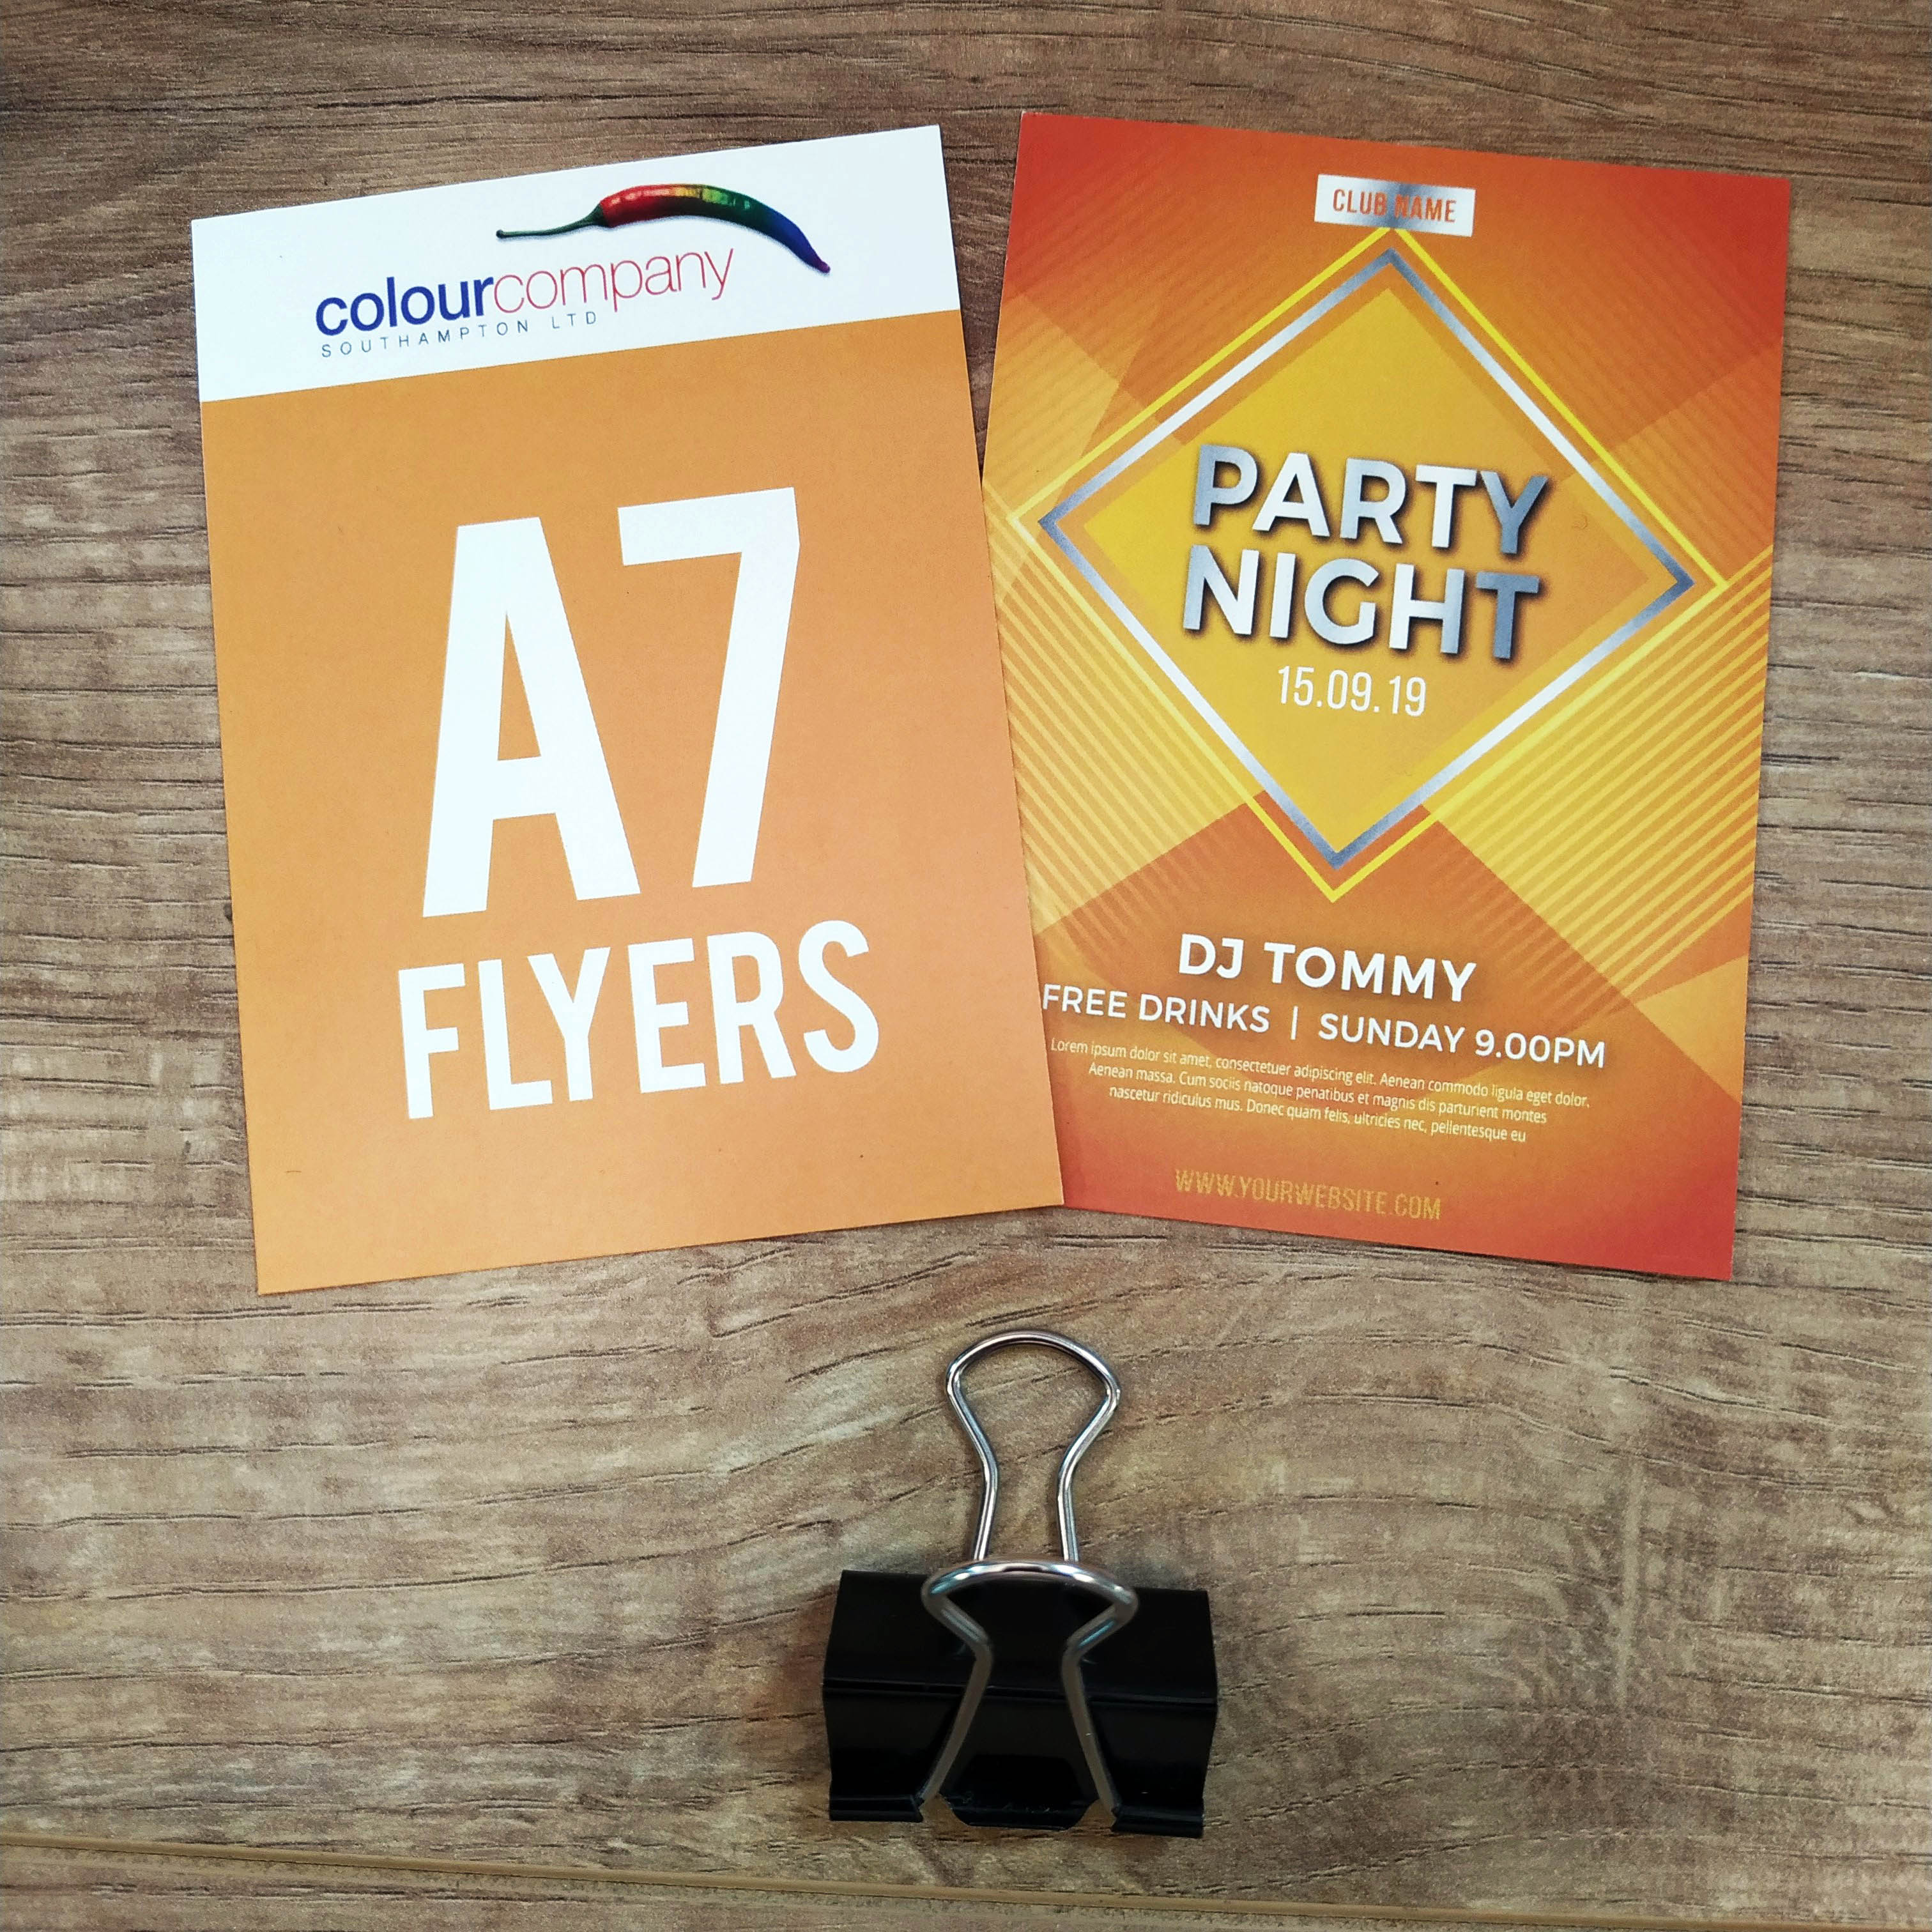 A7 Leaflets and Flyers